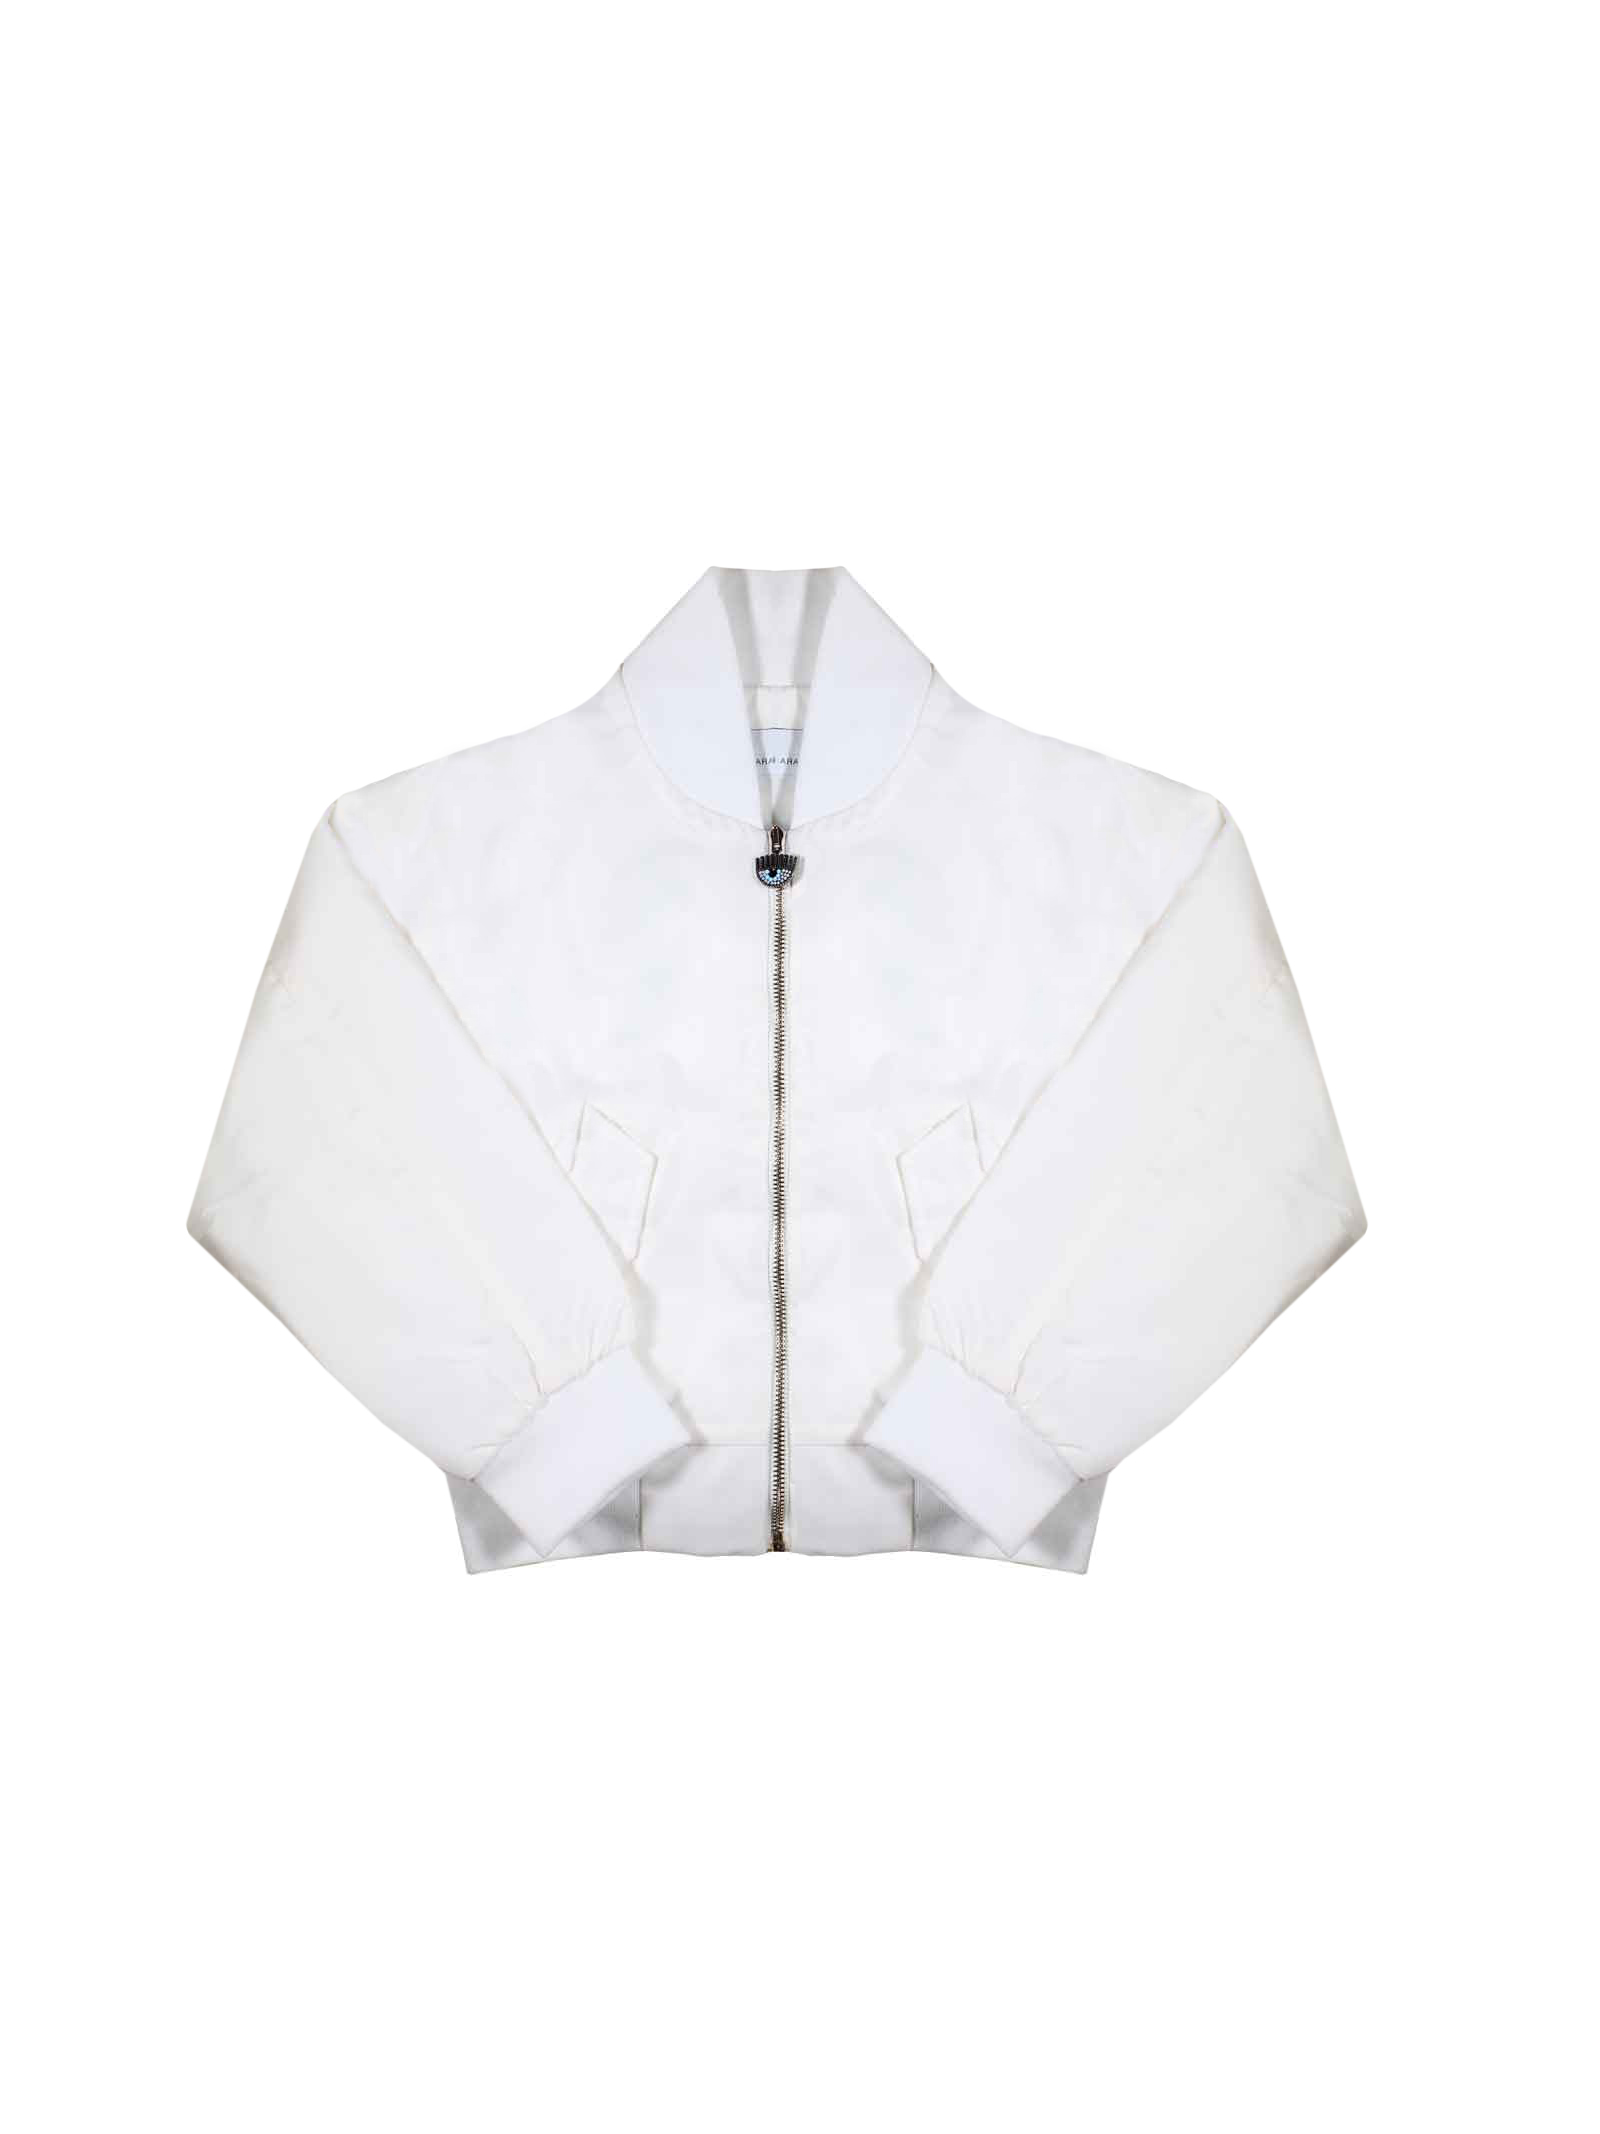 CHIARA WHITE BOMBER FERRAGNI KIDS FOR GIRL  CHIARA FERRAGNI KIDS | 1236091882 | CFKJ004BIANCO